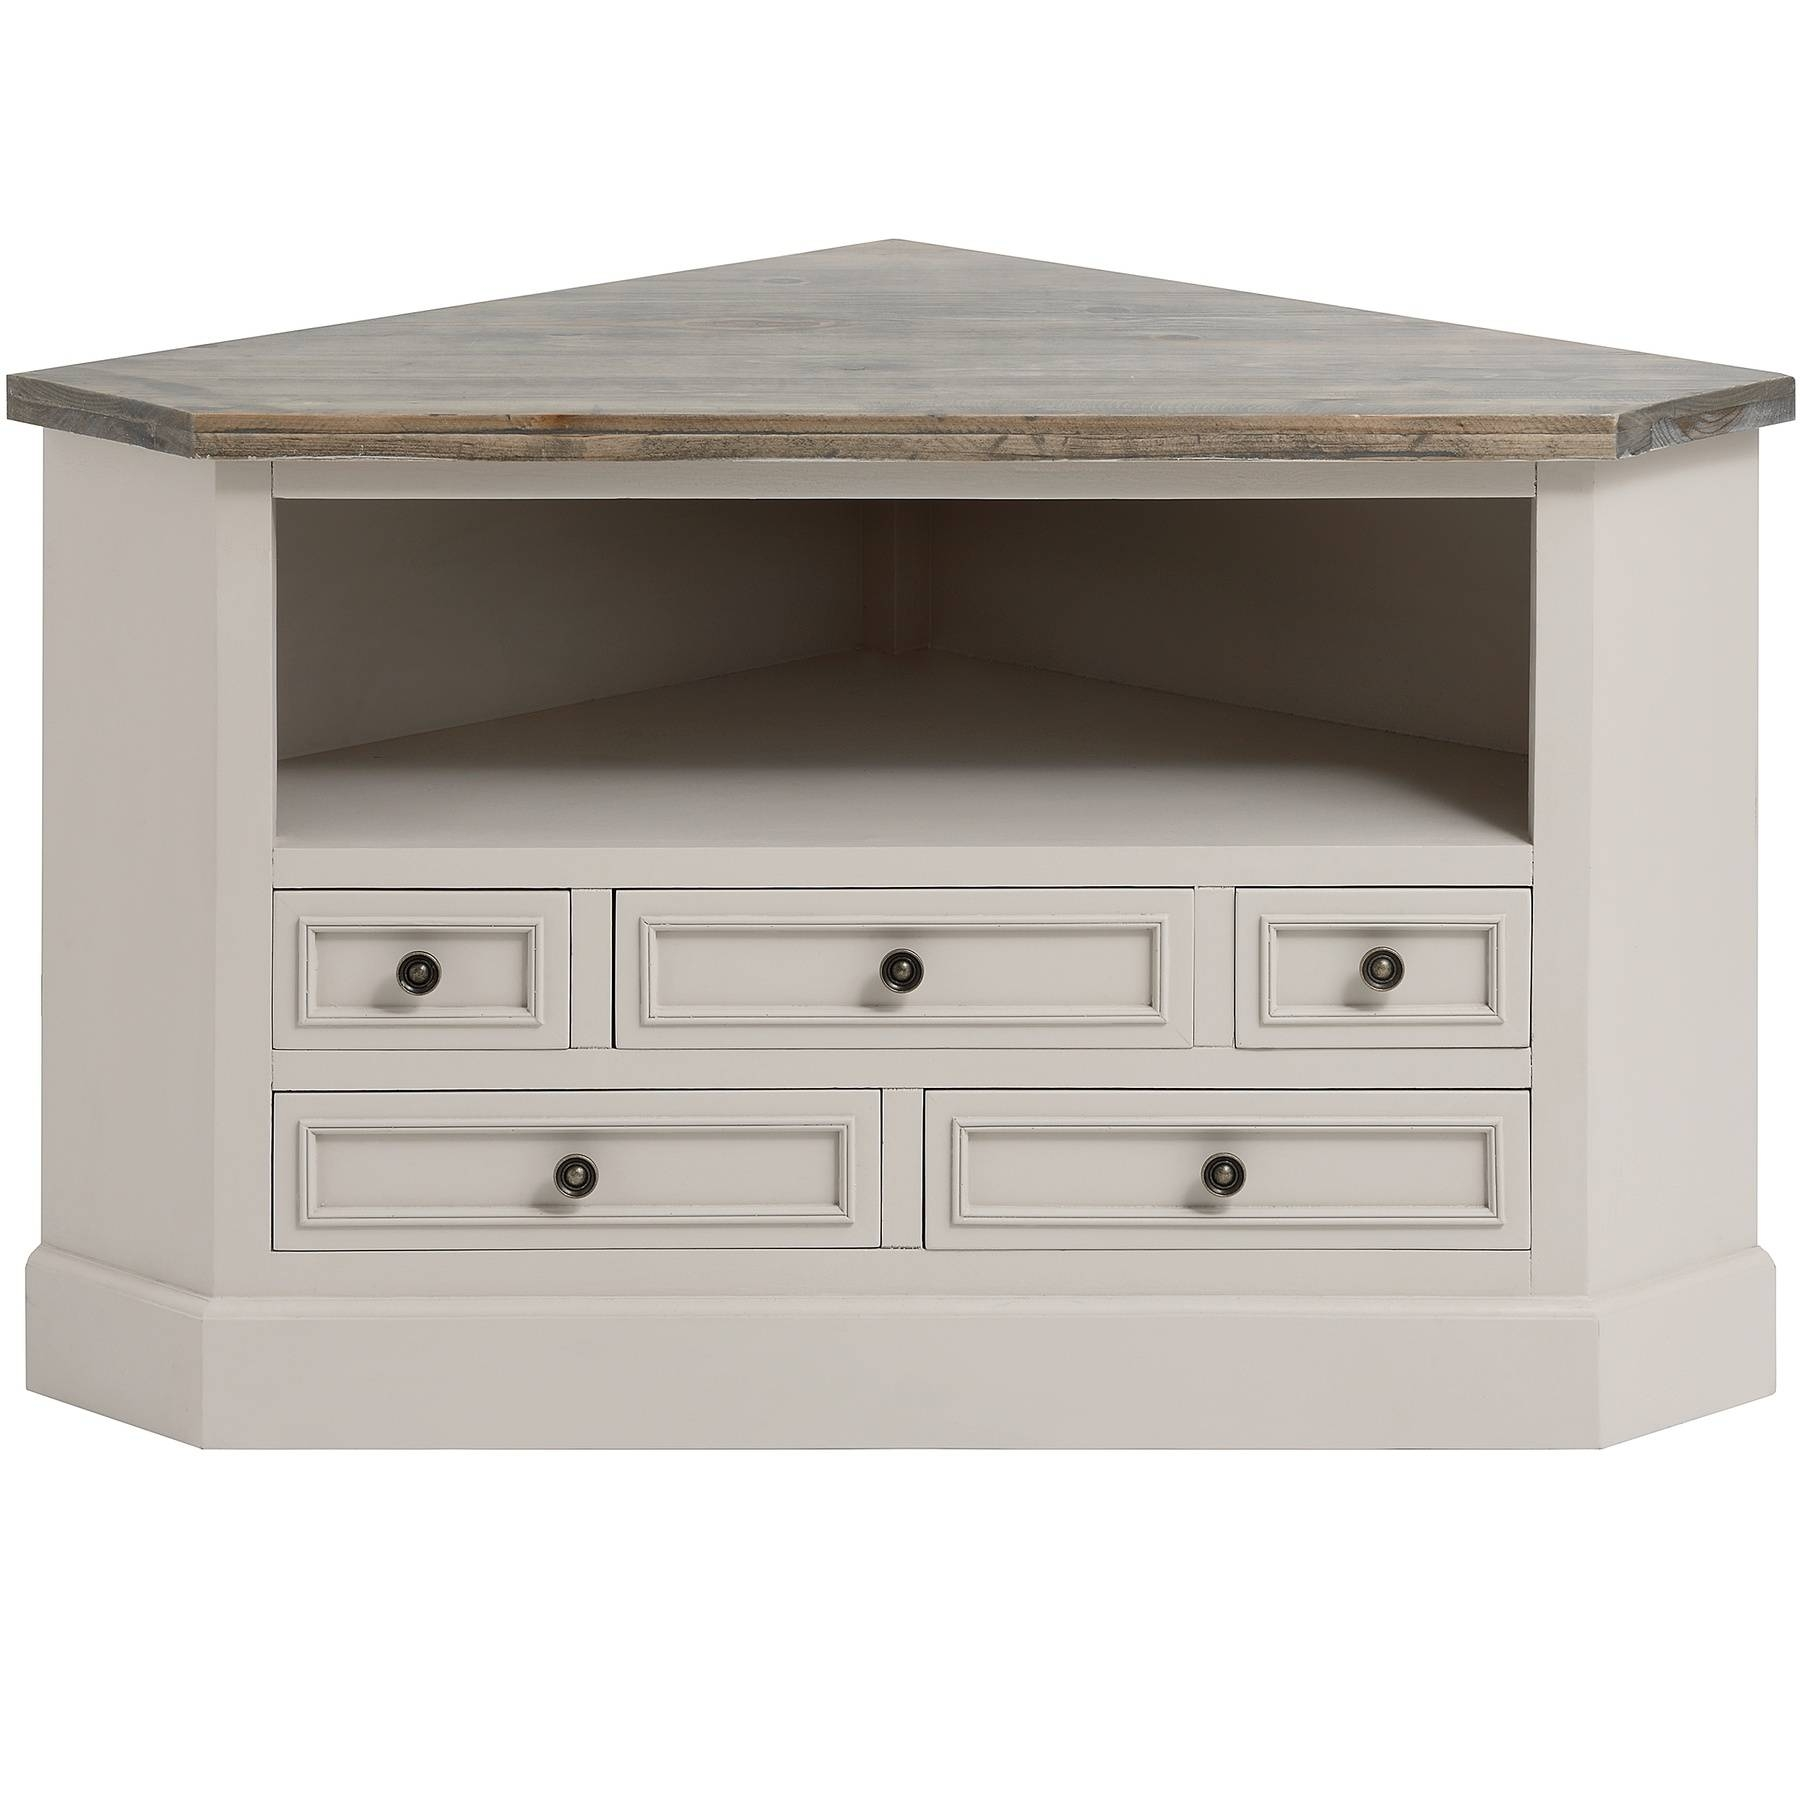 The Studley Collection Corner Tv Unit | From Baytree Interiors In Wooden Corner Tv Units (View 8 of 15)